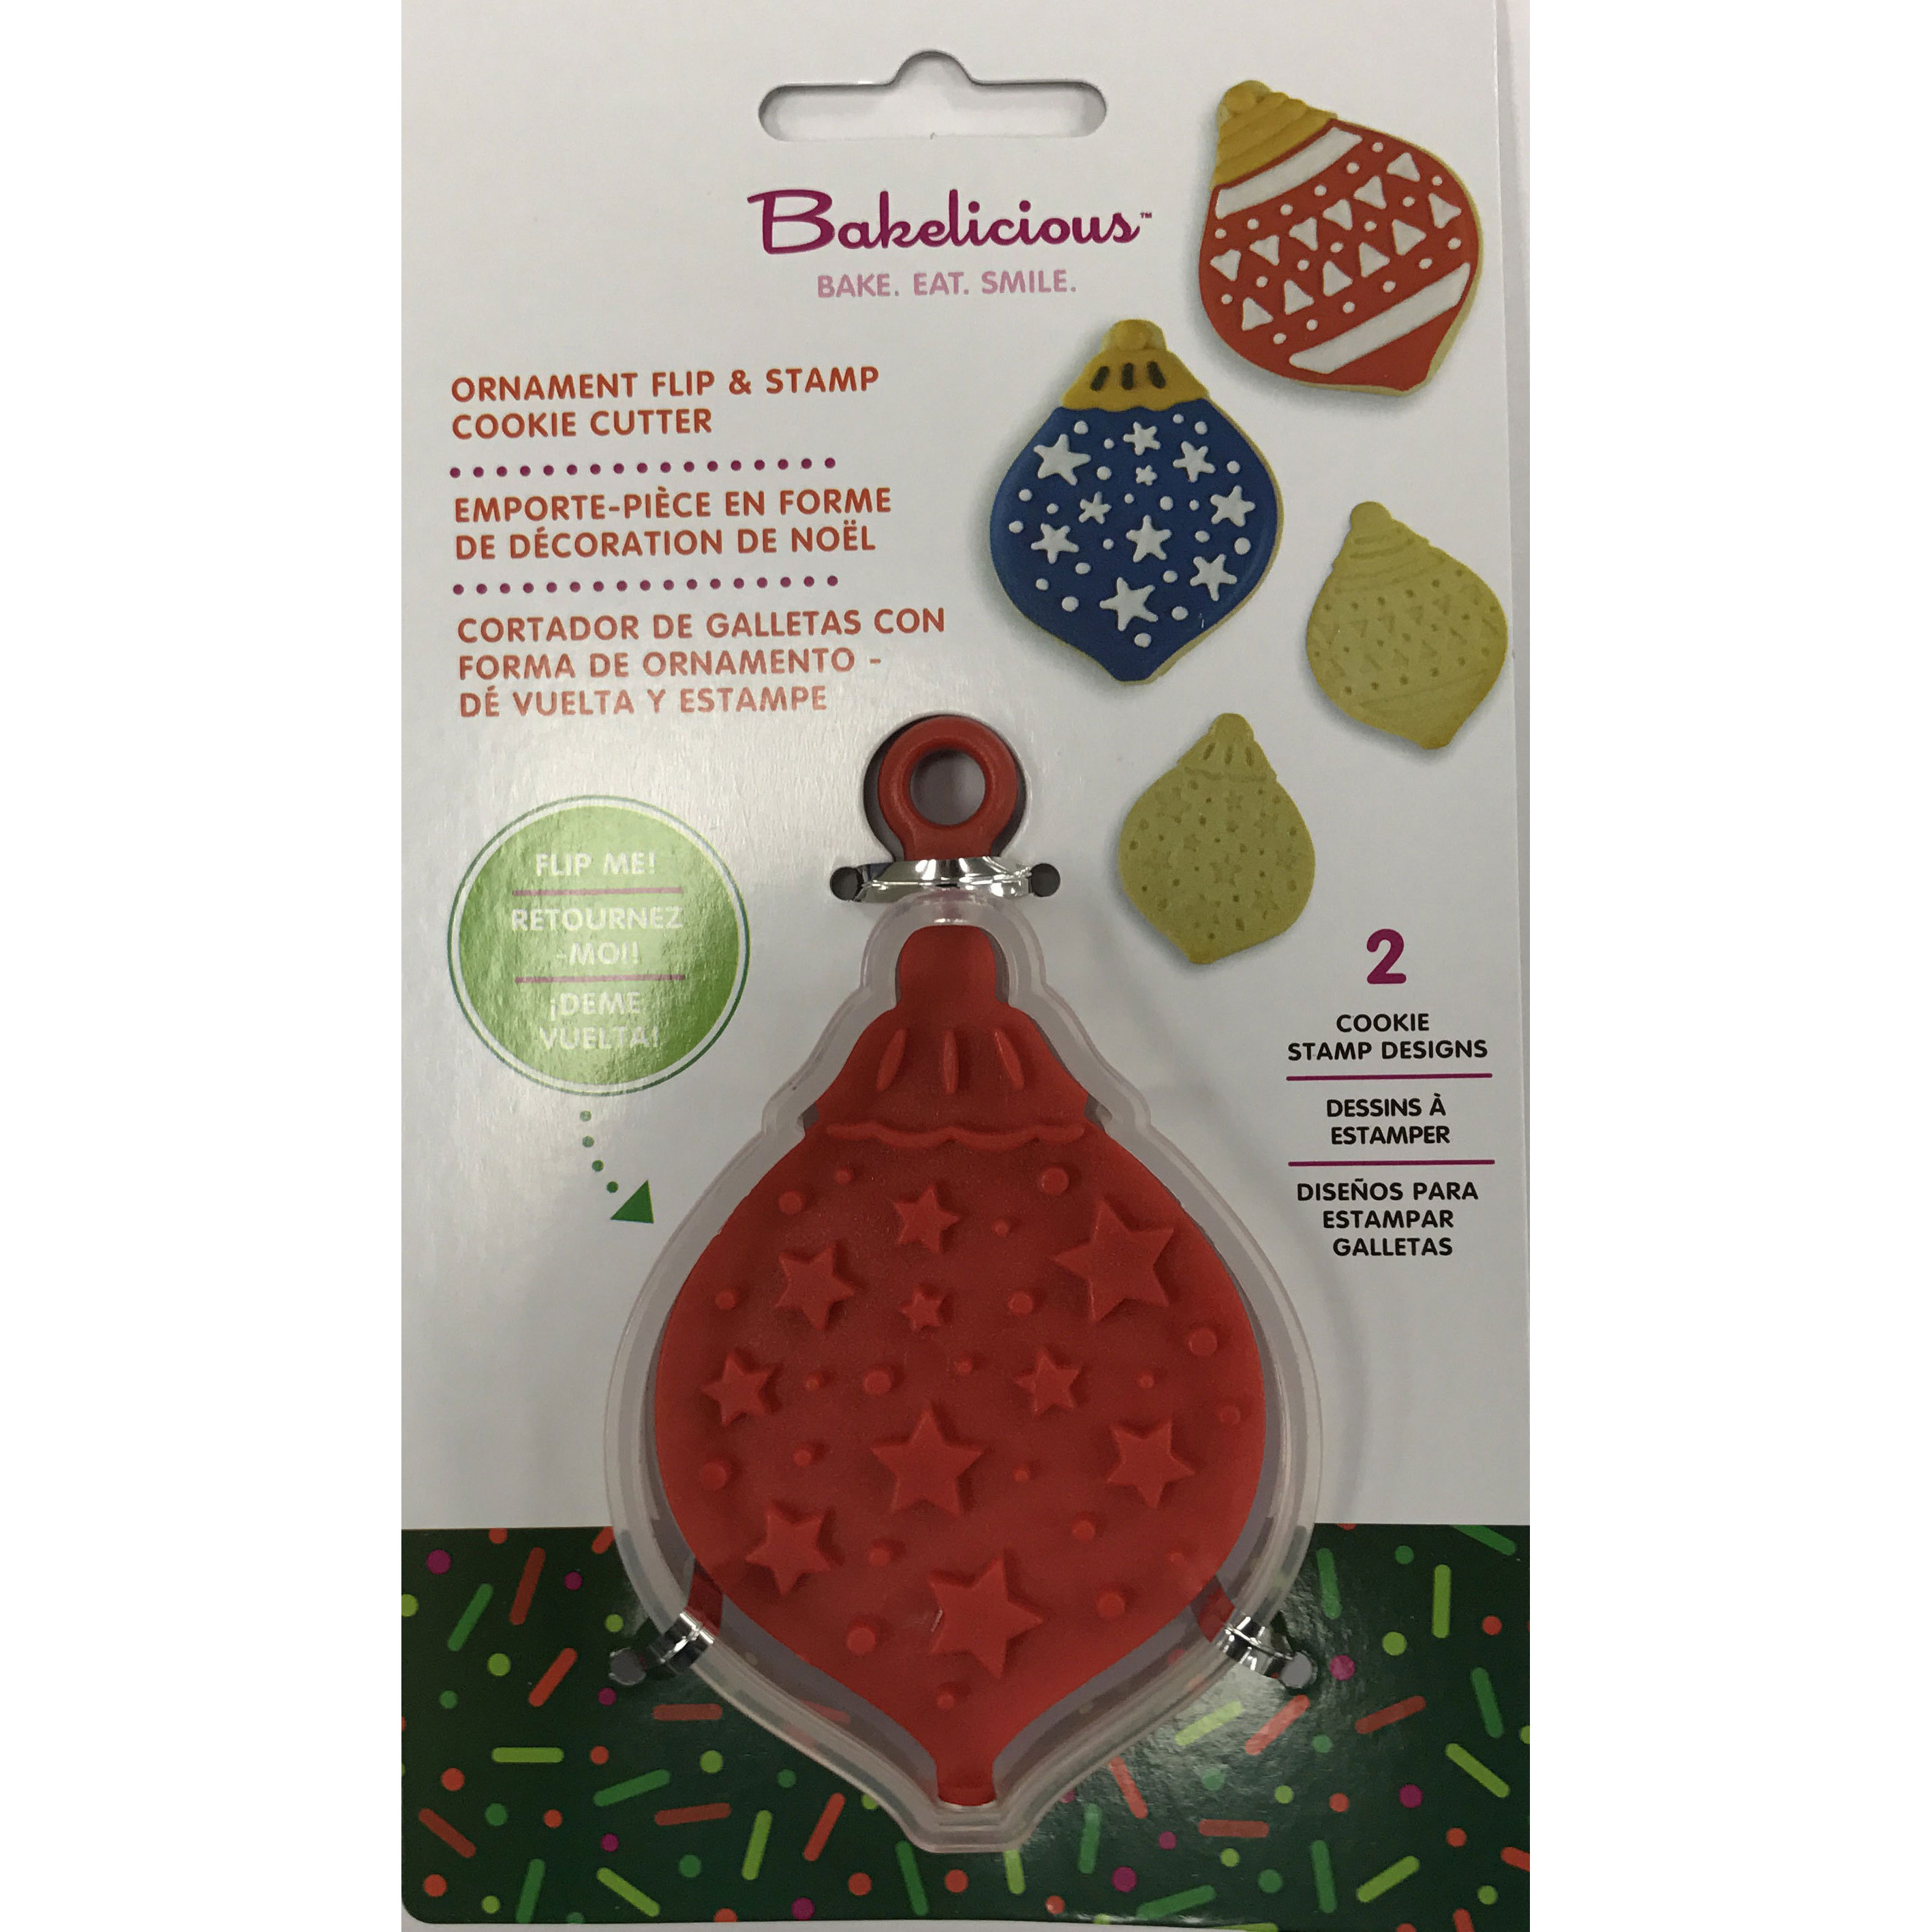 Bakelicious 72848 Christmas Ornament 3-in-1 Flip & Stamp Cookie Cutter